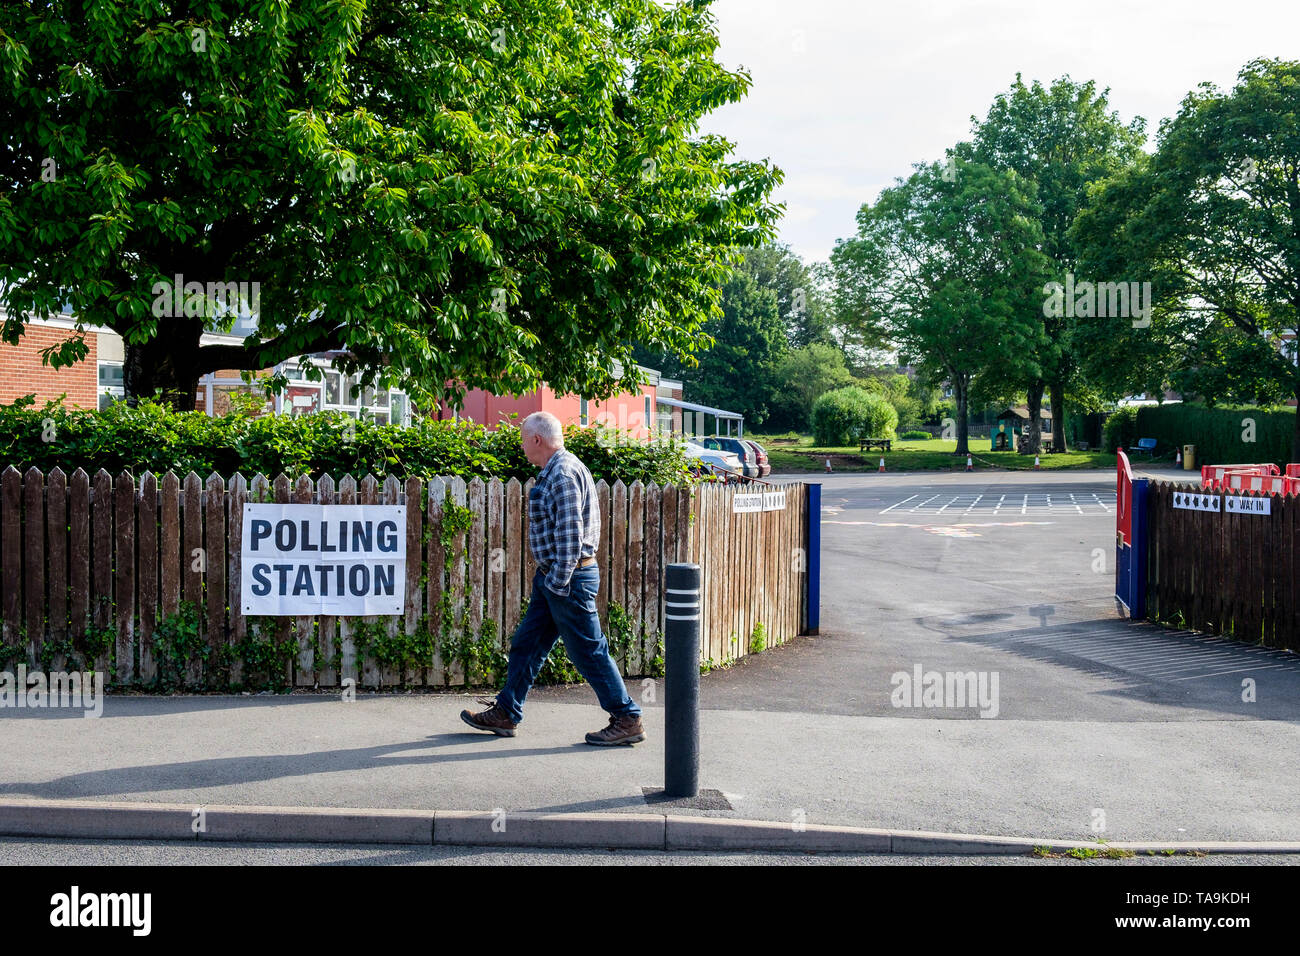 Chippenham, UK. 23rd May, 2019. A man is pictured walking past a polling station sign outside a school in Chippenham, Wiltshire as voting takes place in the 2019 European Parliament elections. Credit: Lynchpics/Alamy Live News - Stock Image